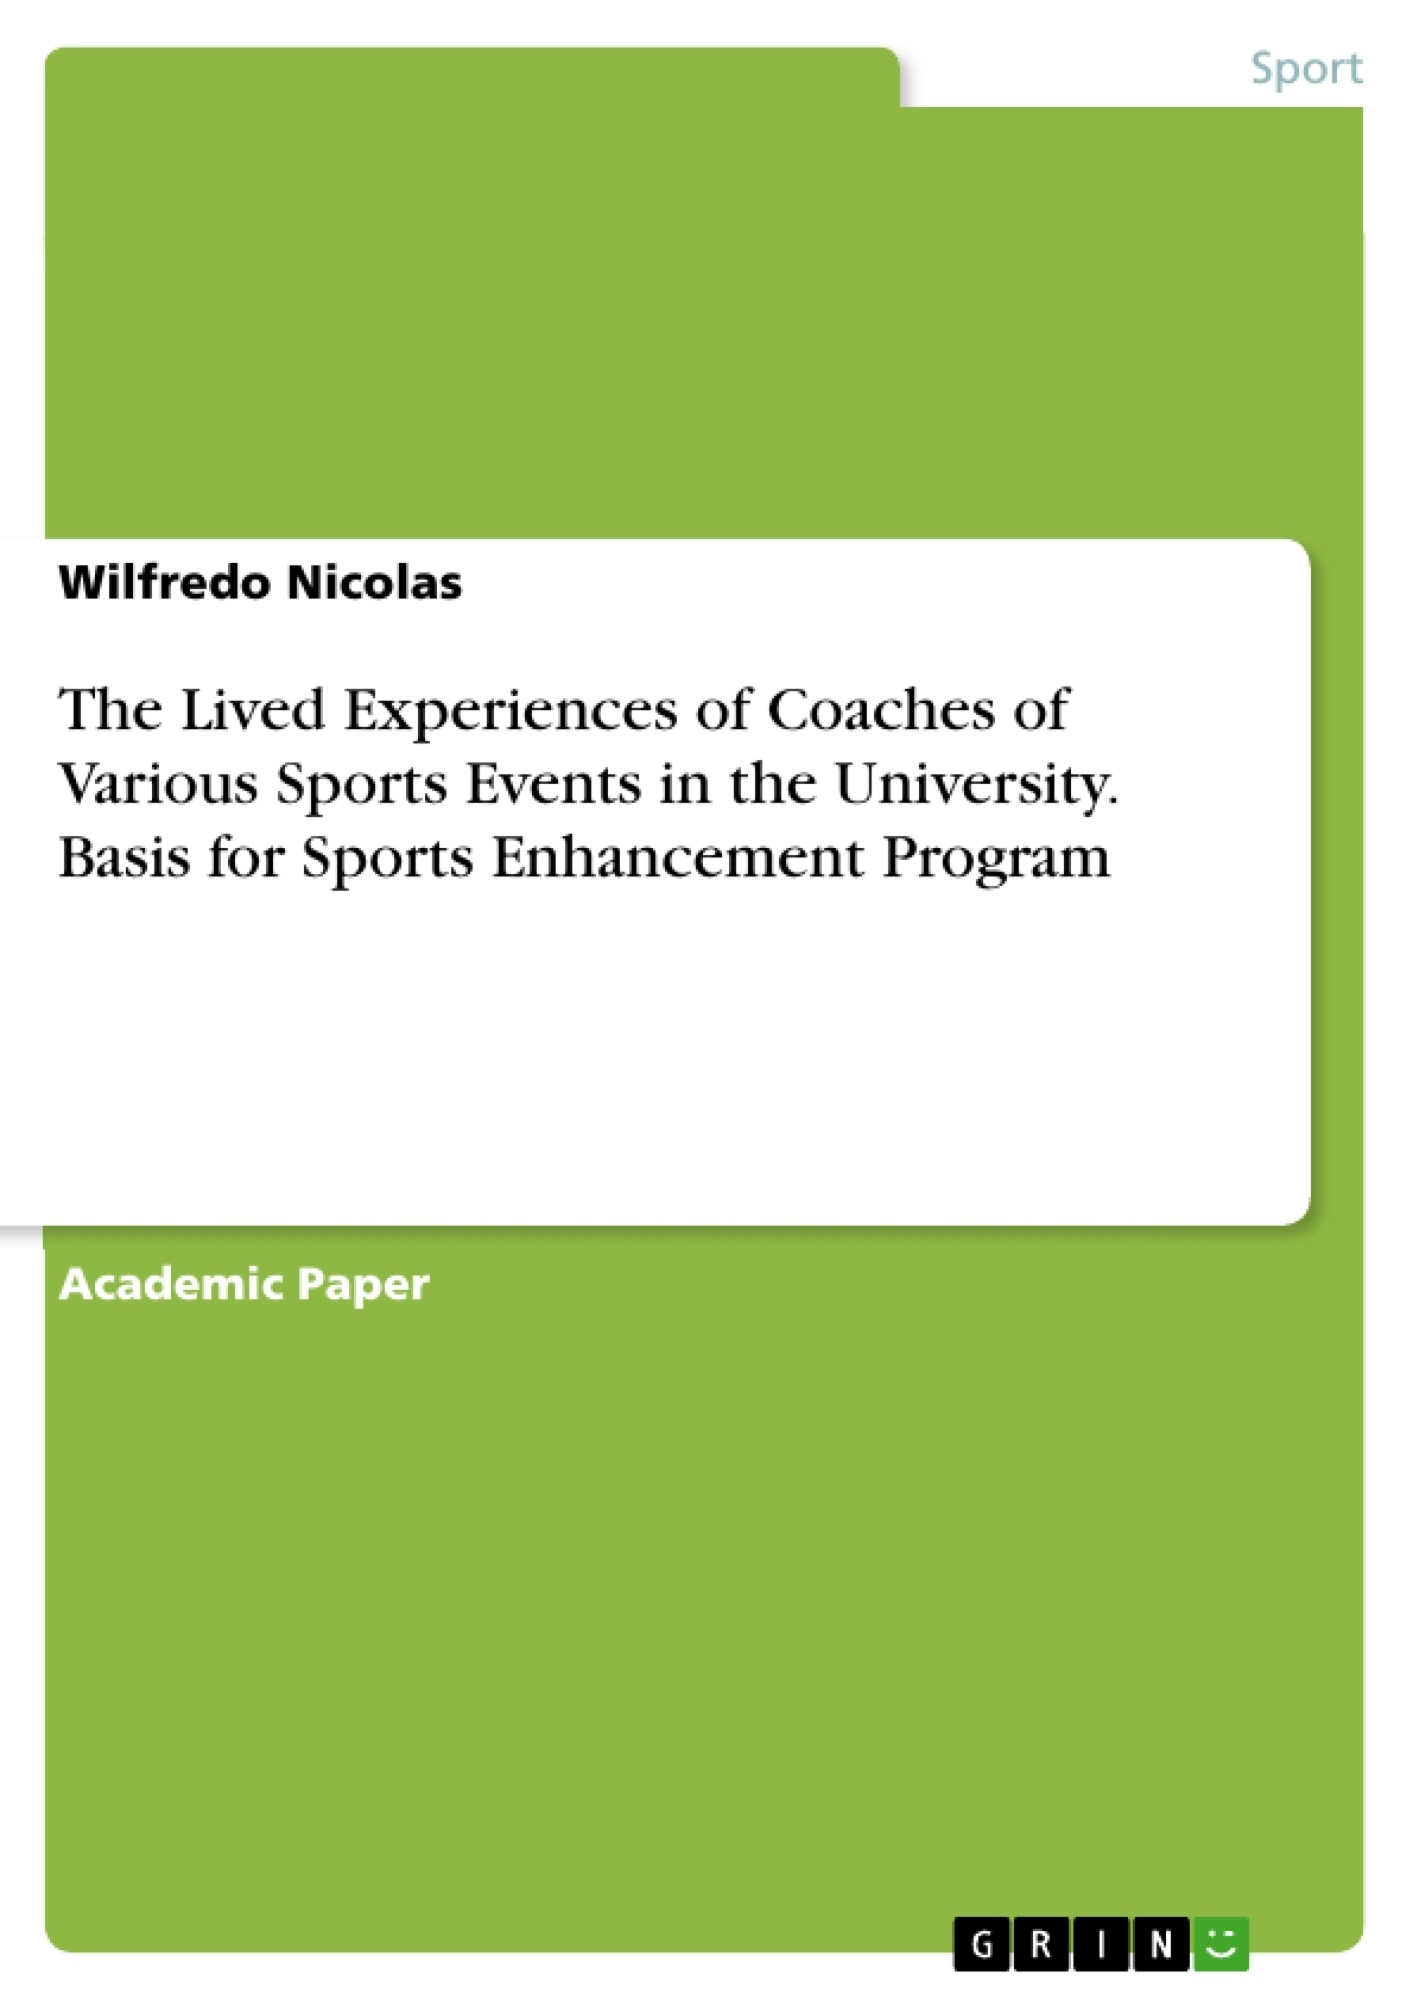 Title: The Lived Experiences of Coaches of Various Sports Events in the University. Basis for Sports Enhancement Program